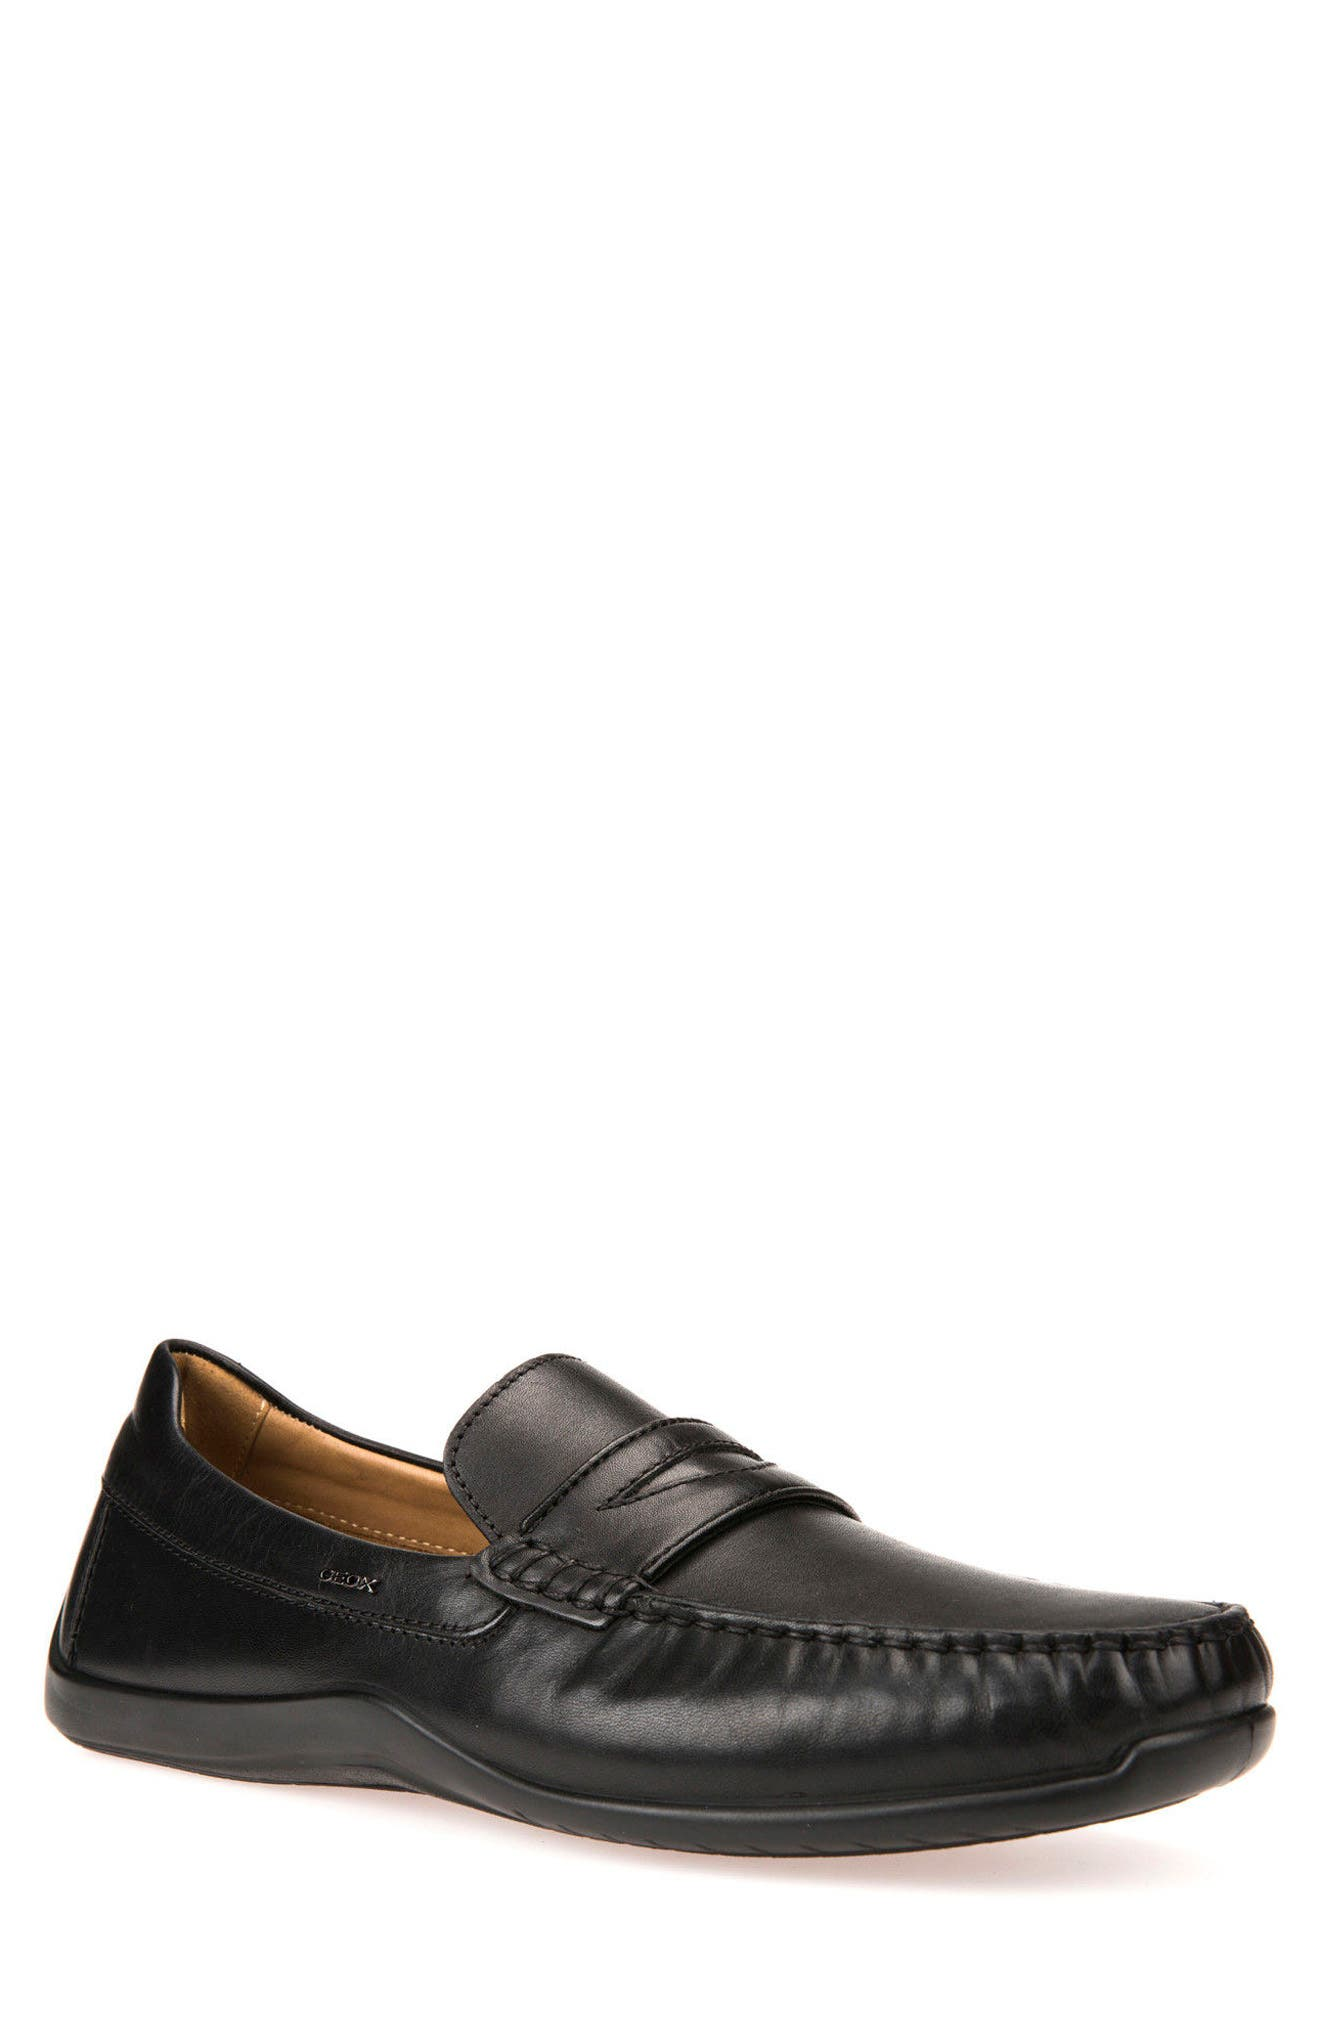 Xense Penny Loafer,                             Main thumbnail 1, color,                             001